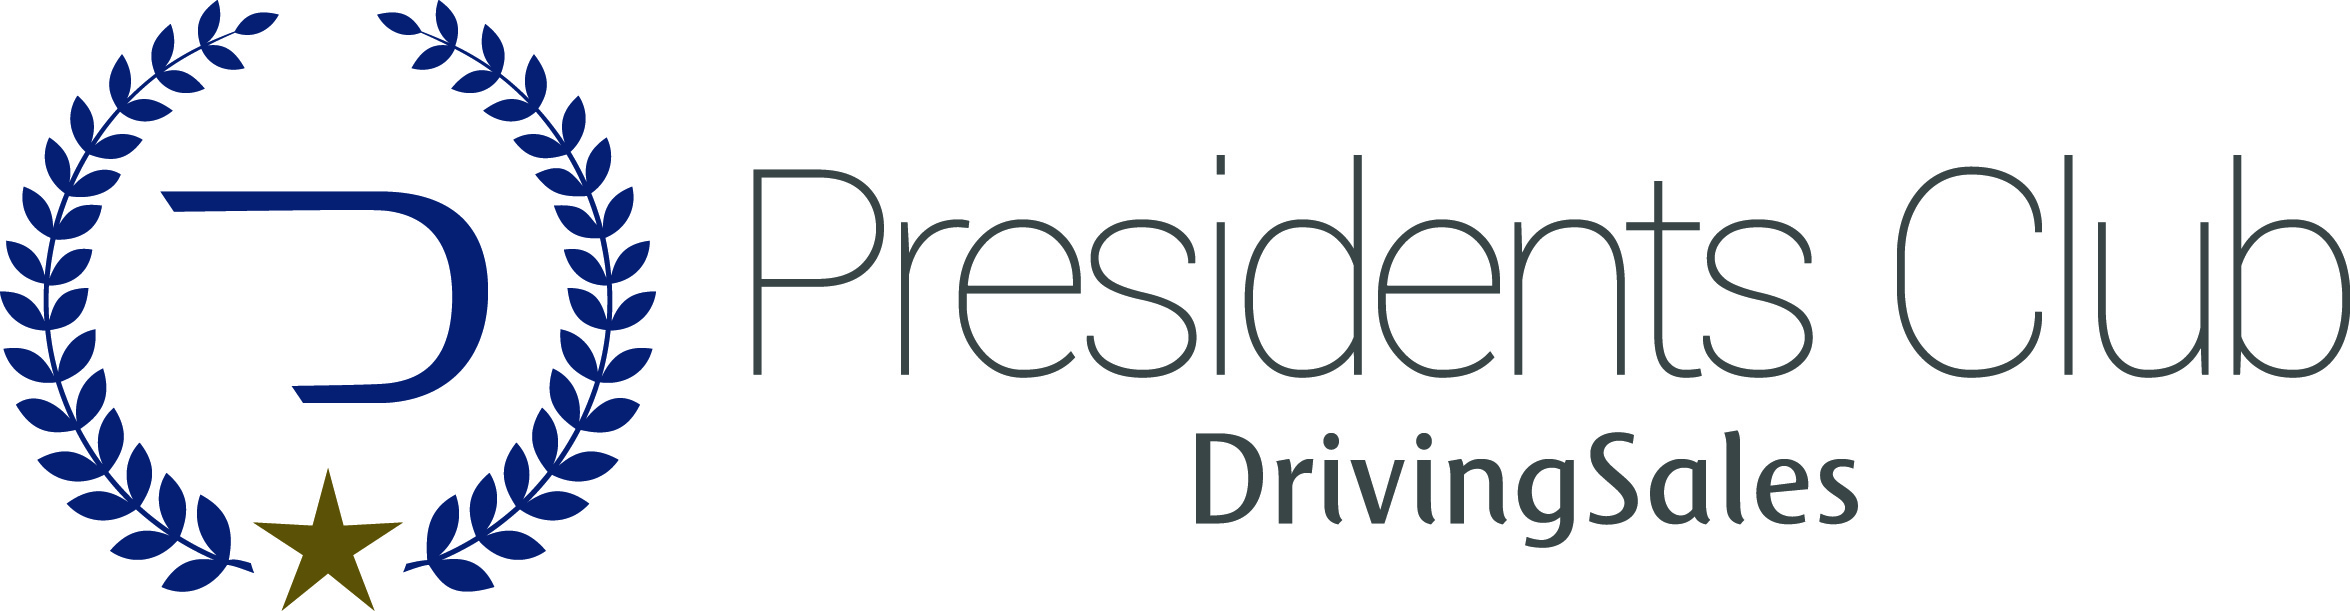 About the DrivingSales Presidents Club